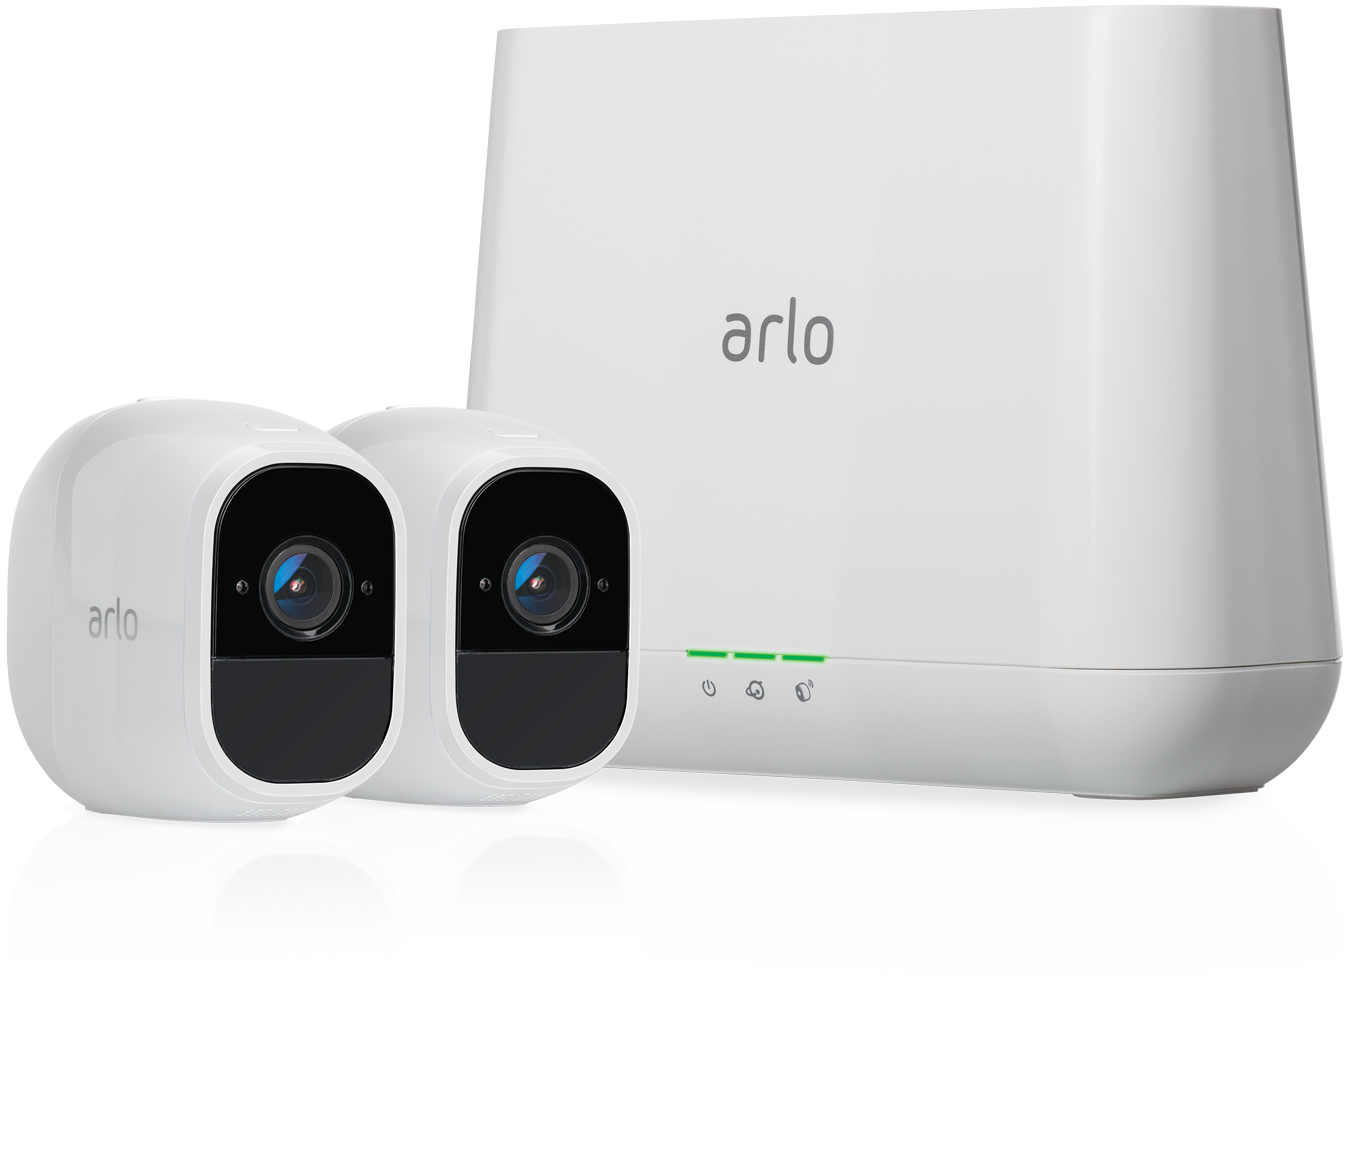 Arlo Pro Smart Security System with 2 Arlo Pro Cameras at Small Dog Electronics